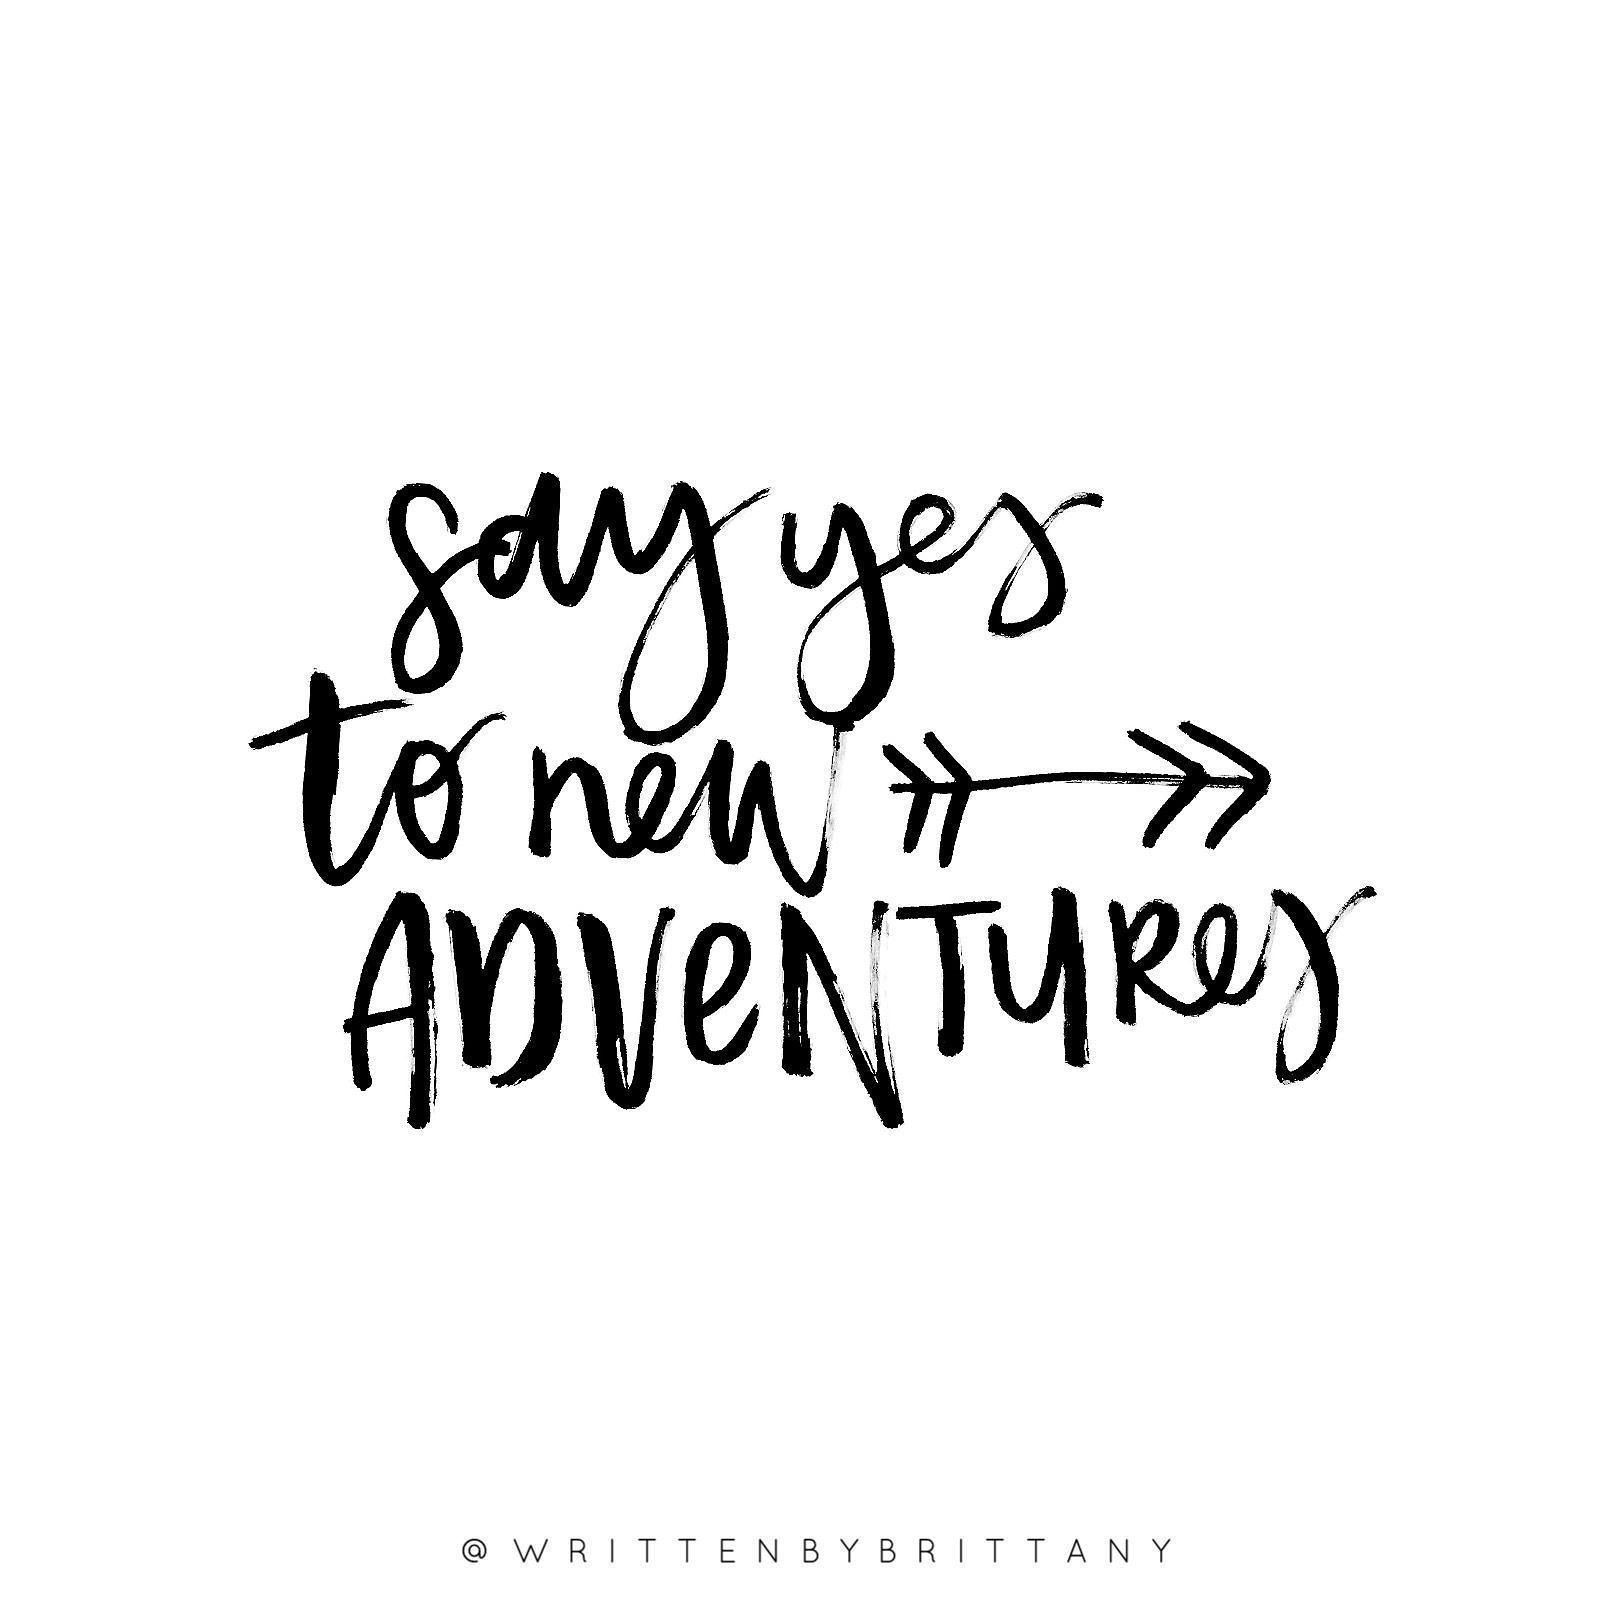 Today say yes to new adventures. You never know where they